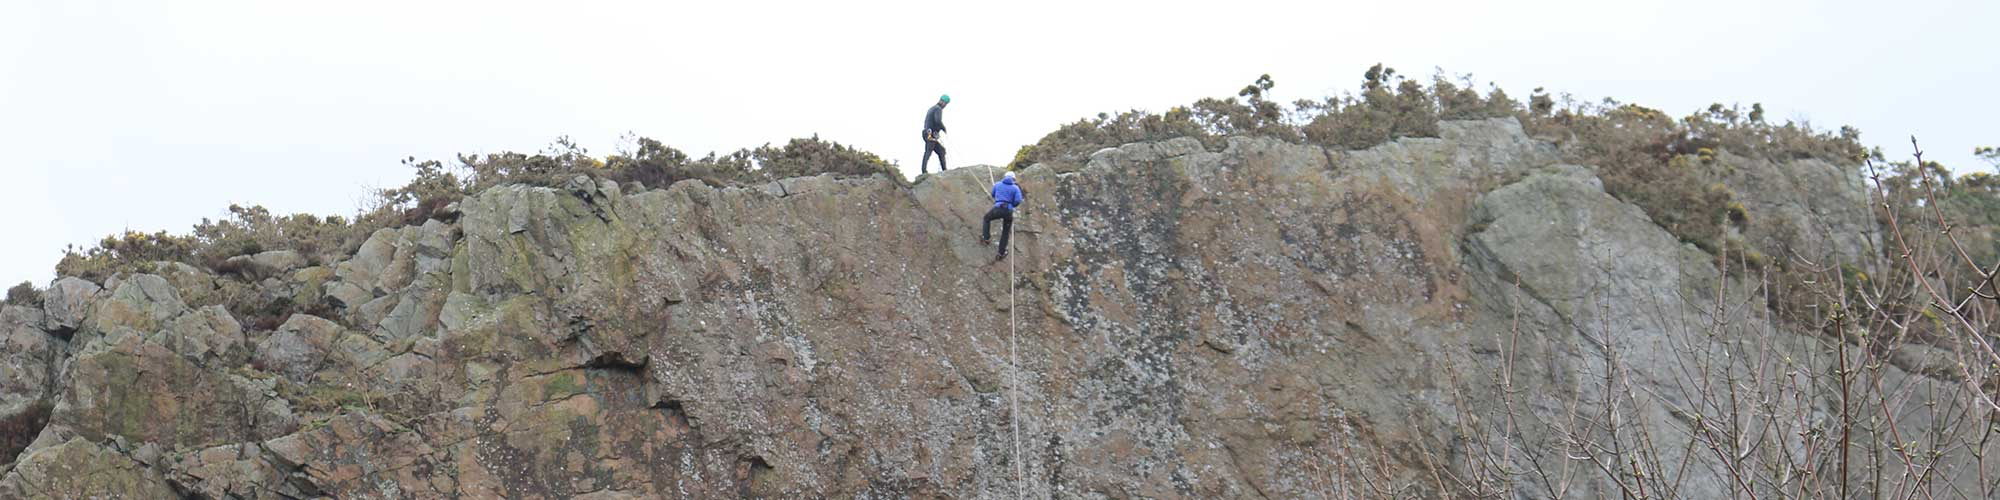 gorge-walking